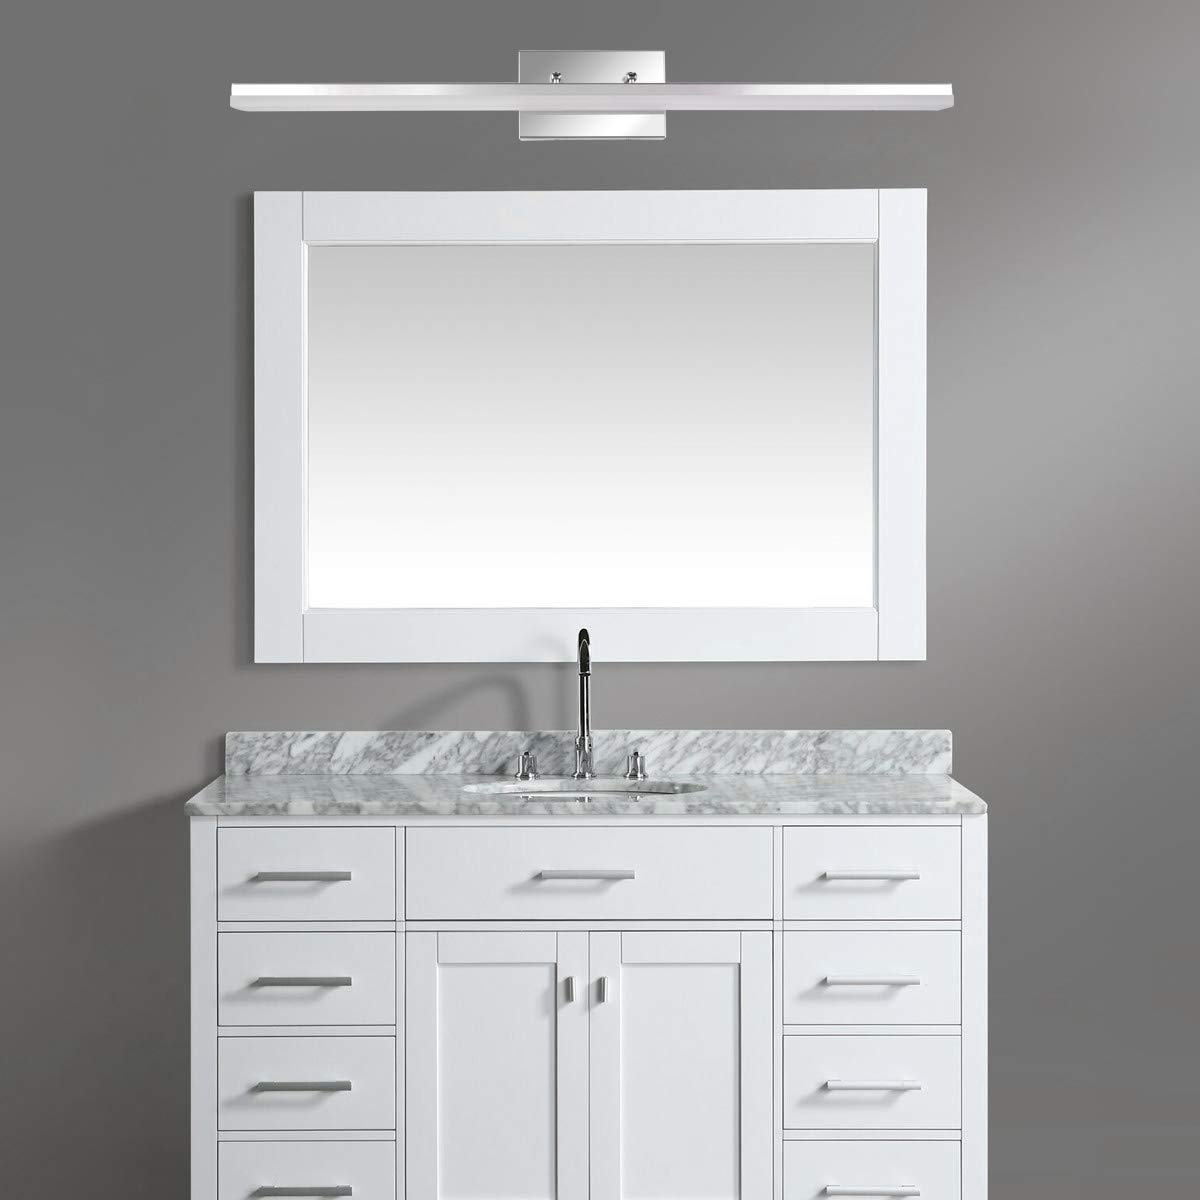 mirrea 36in Modern LED Vanity Light for Bathroom Lighting Dimmable 36w Cold White 5000K by mirrea (Image #3)